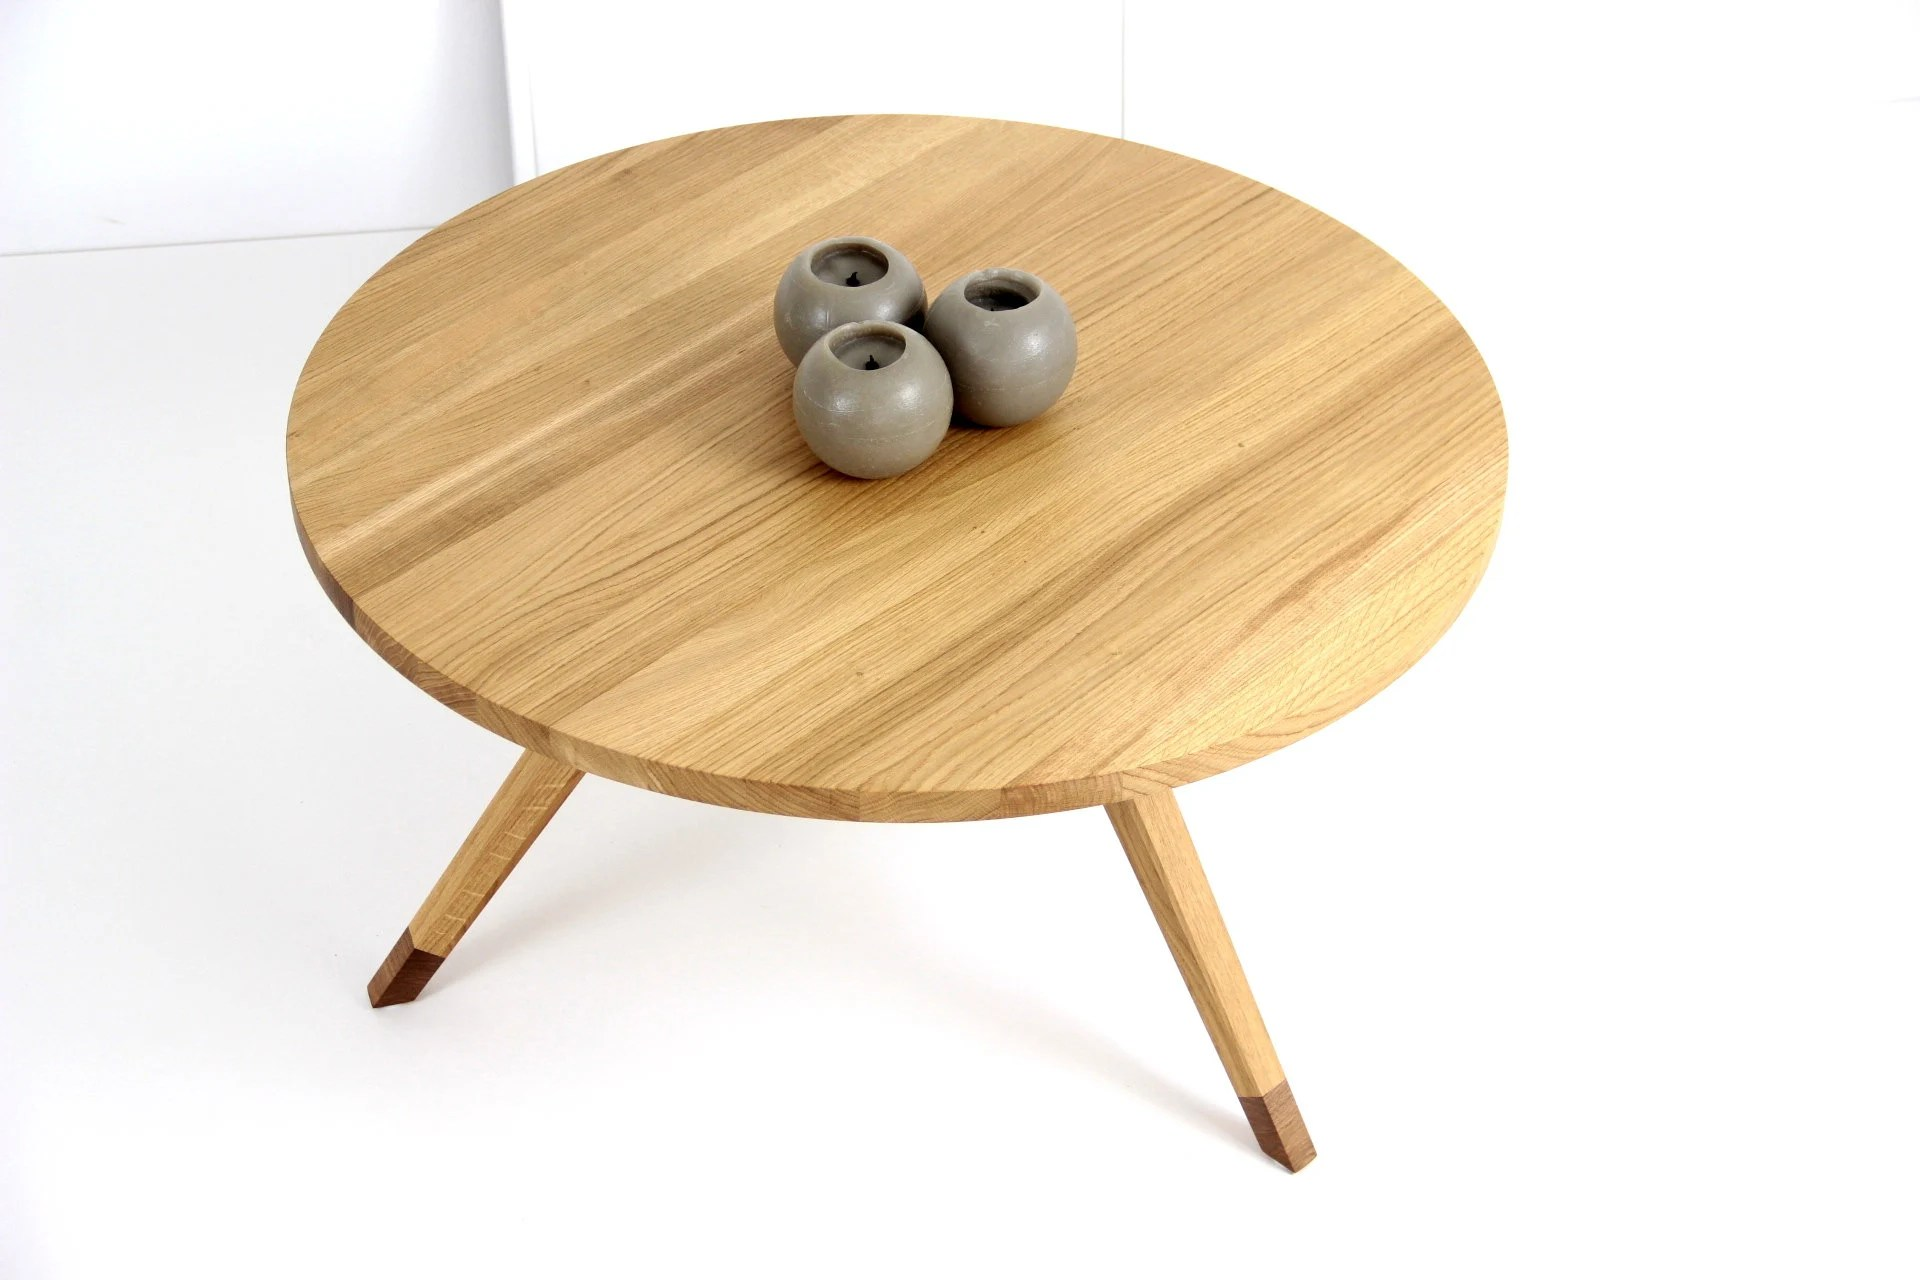 Couchtisch Egg Coffee Table Round Table End Table Oak Table Side Table Table Basse Ronde Runder Couchtisch